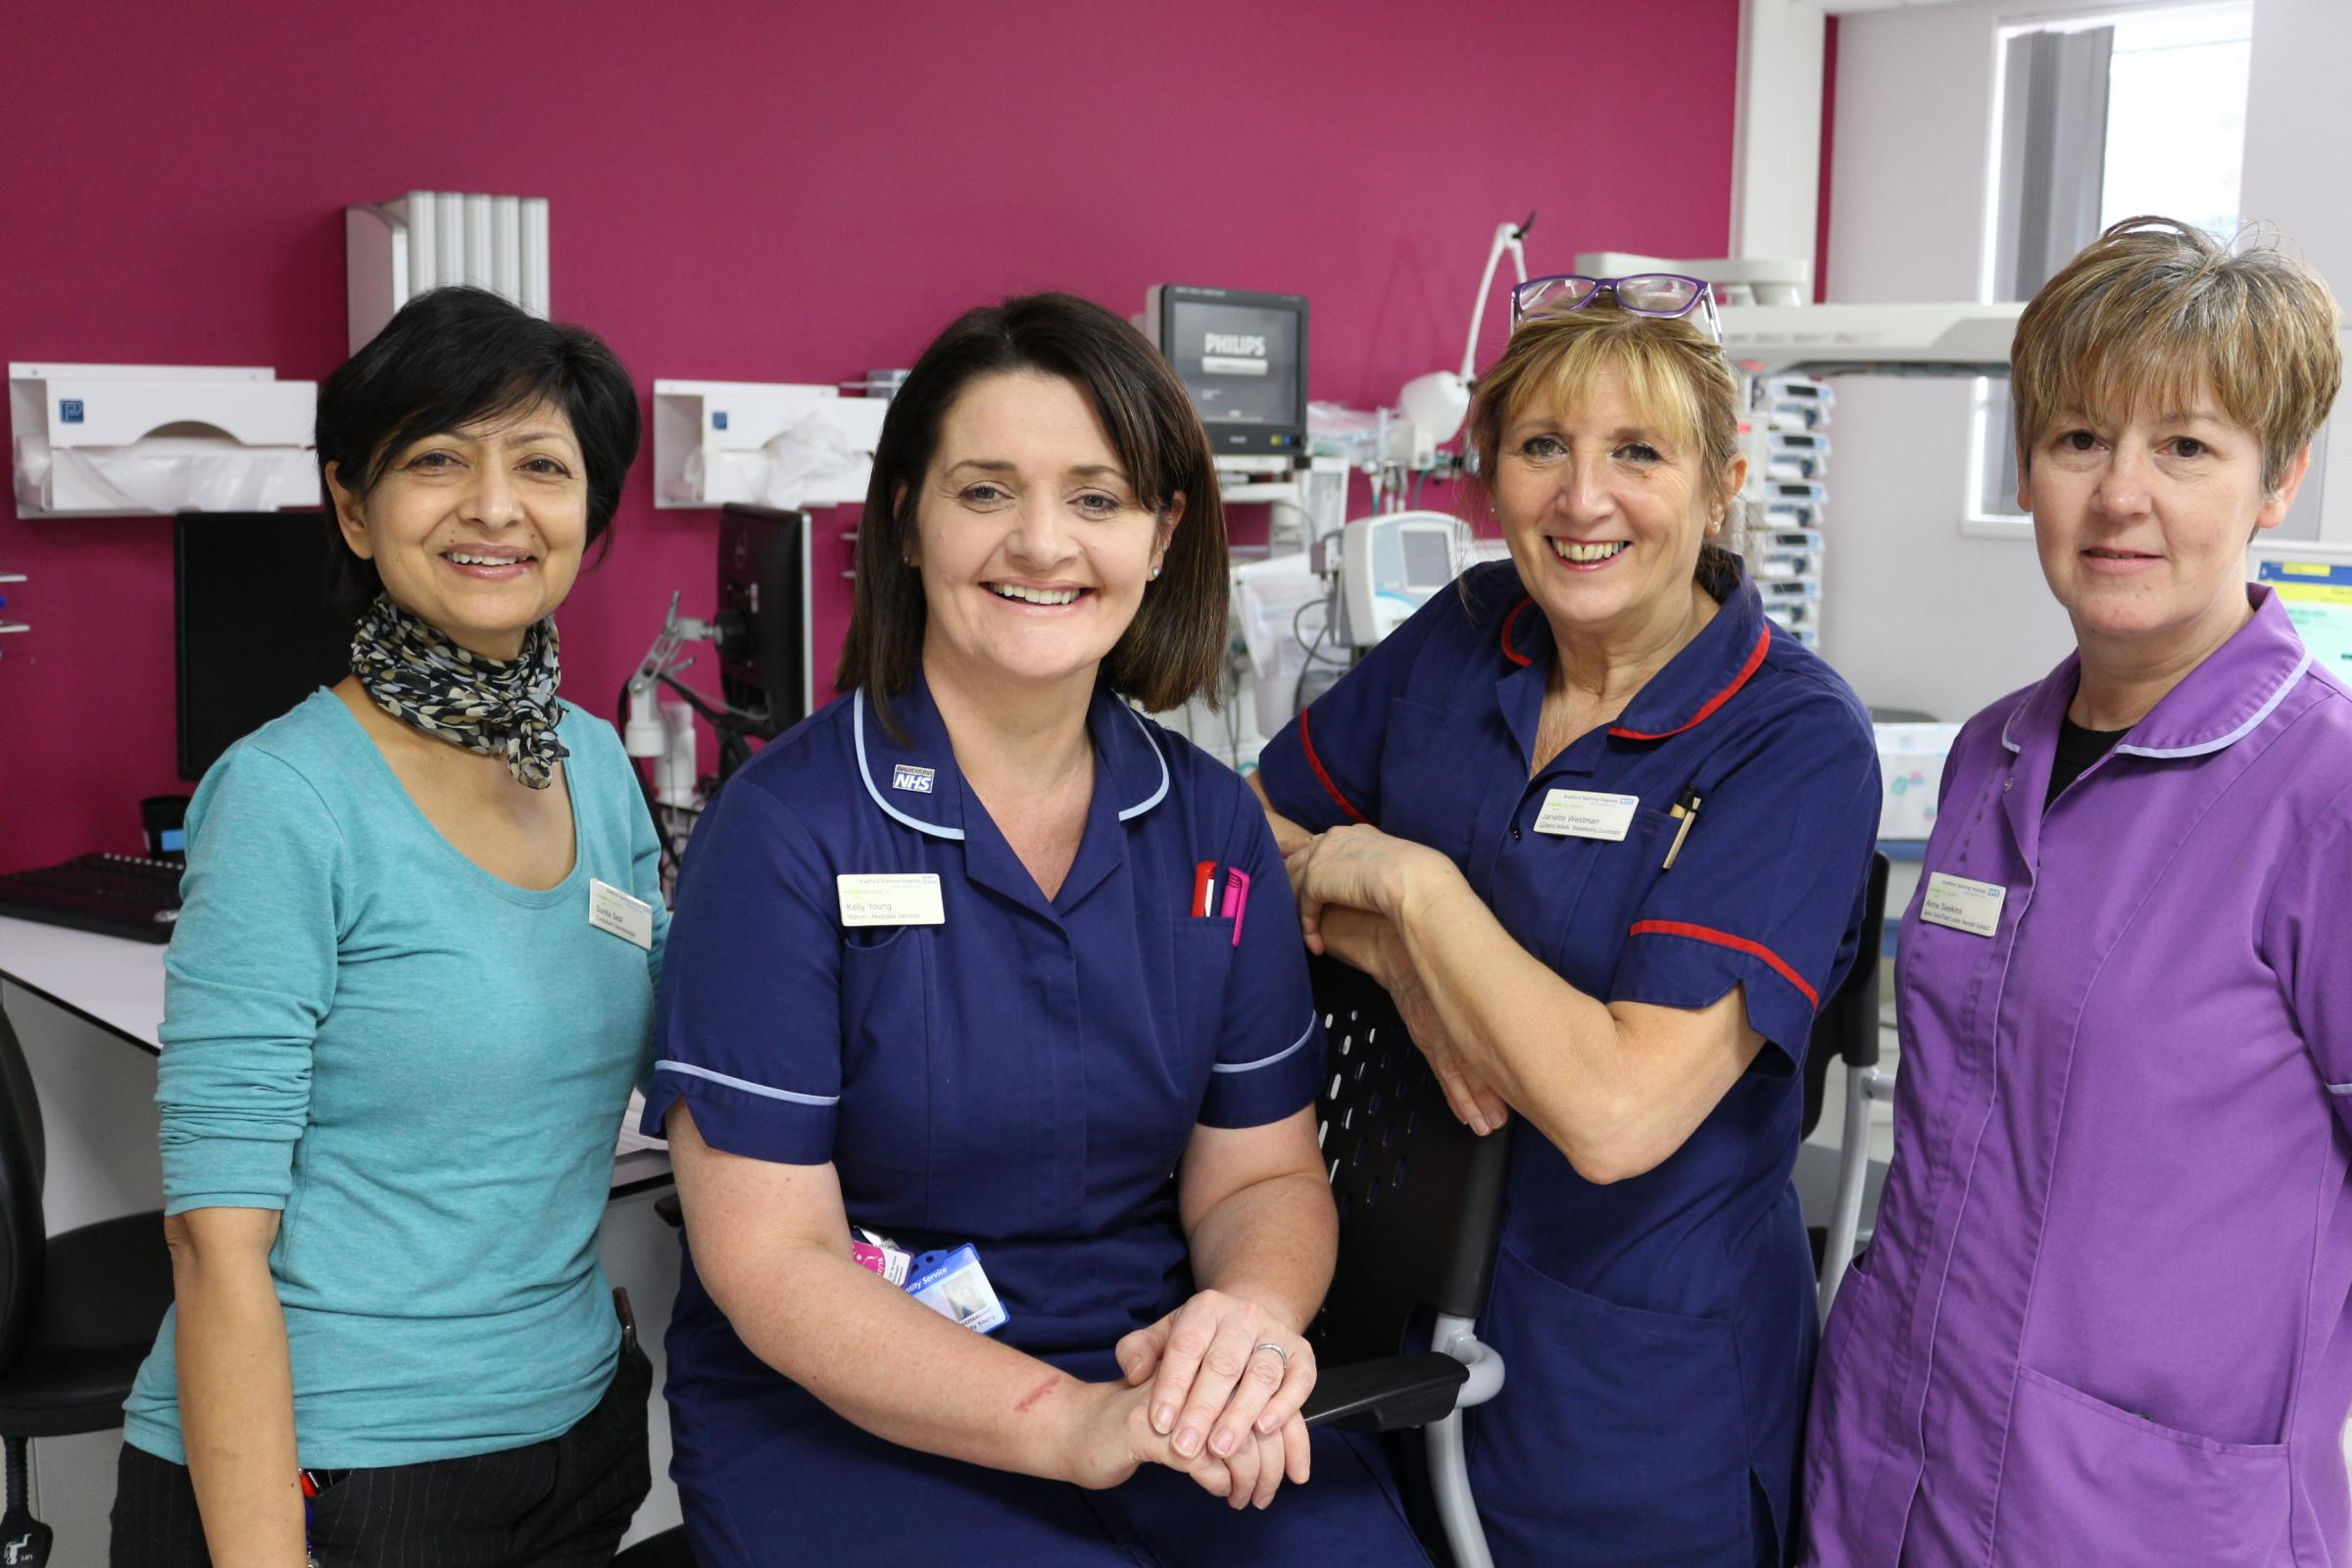 Some of the team at Bradford Royal Infirmary's Neonatal Intensive Care Unit